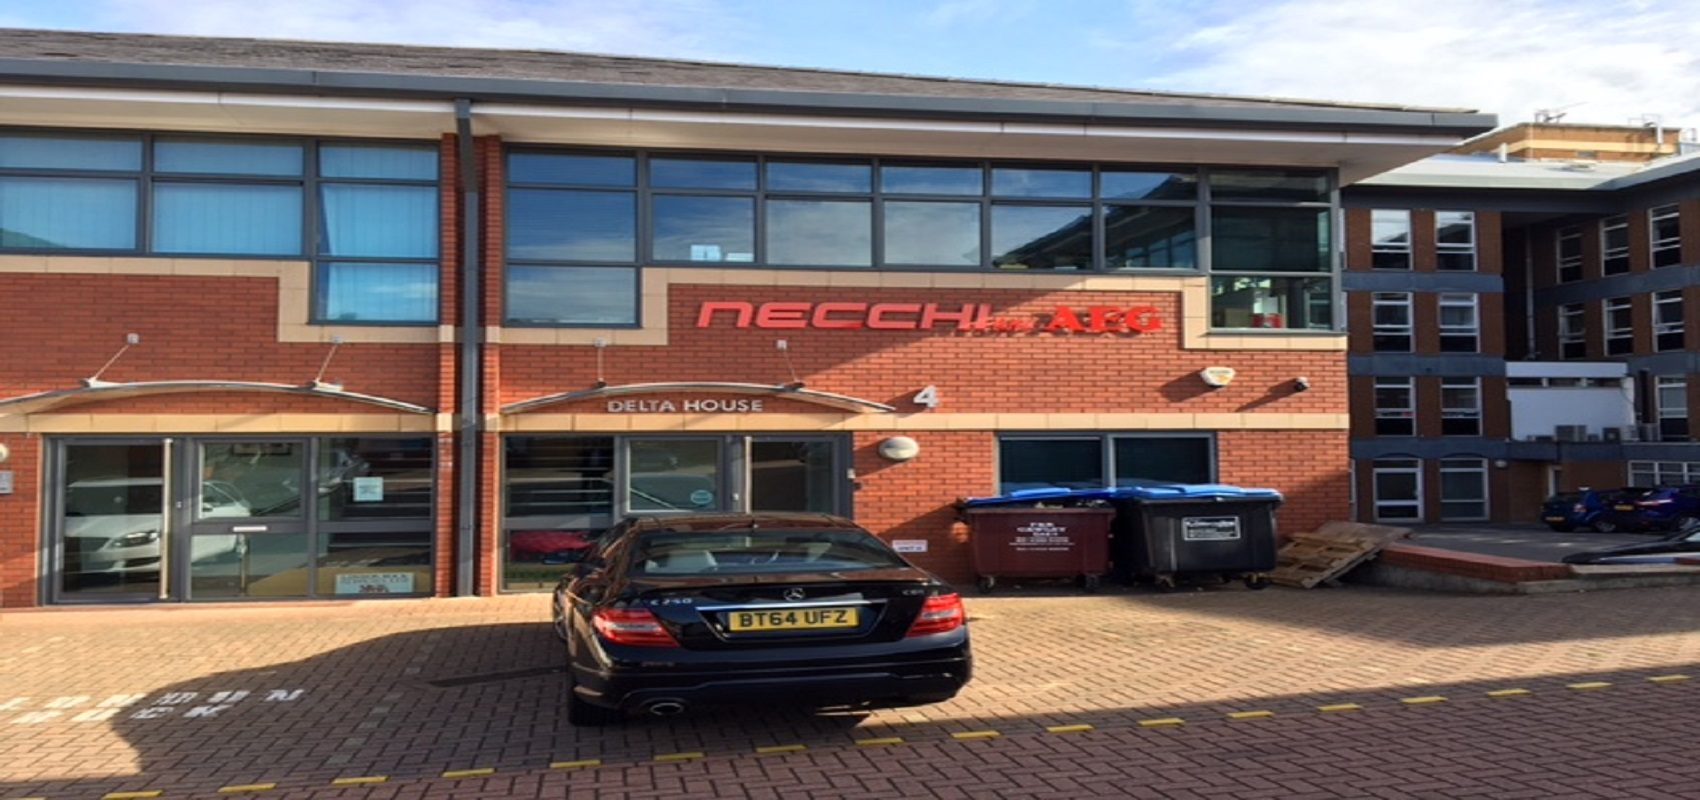 MODERN OFFICE BUILDING WITH PARKING – FREEHOLD FOR SALE